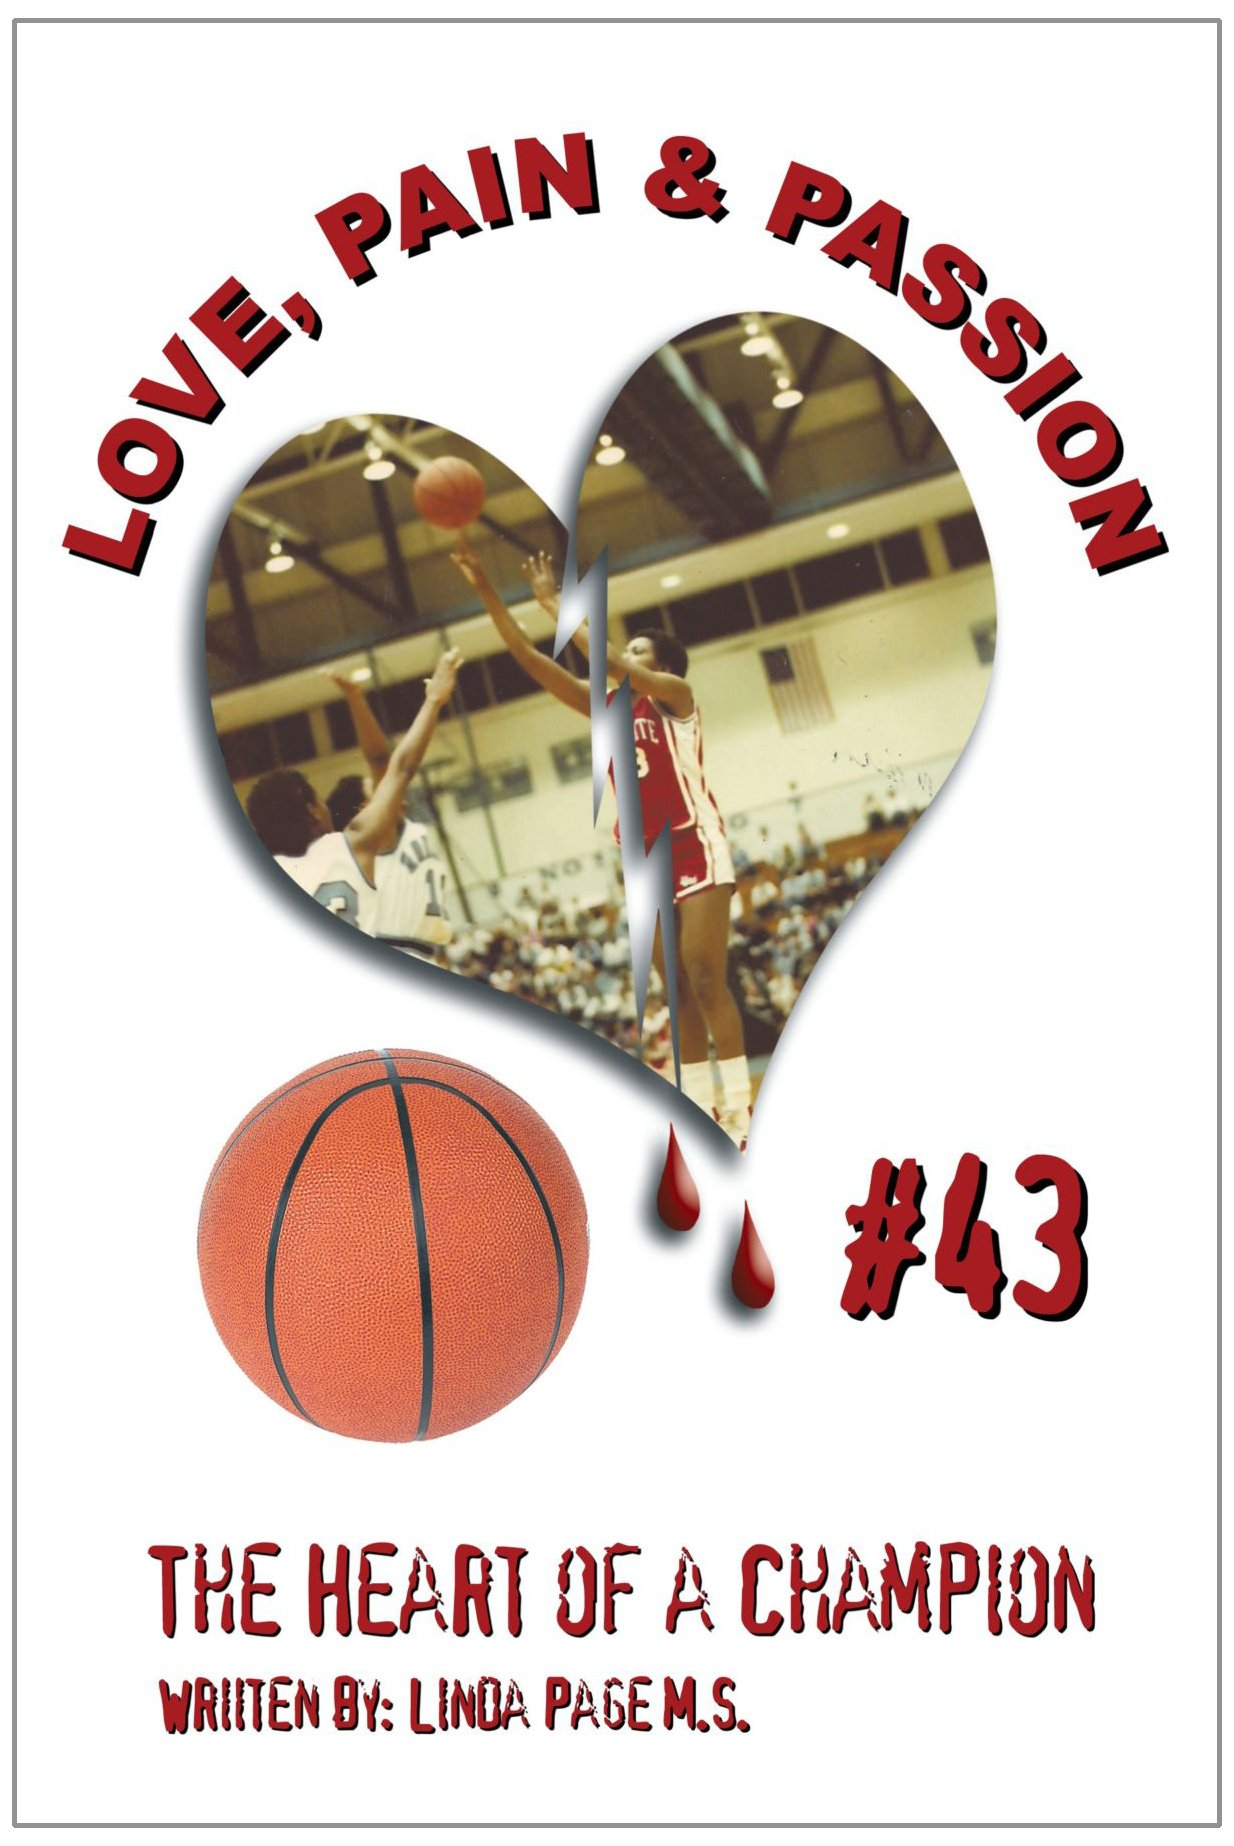 Download Love, Pain & Passion the Heart of a Champion PDF Text fb2 ebook